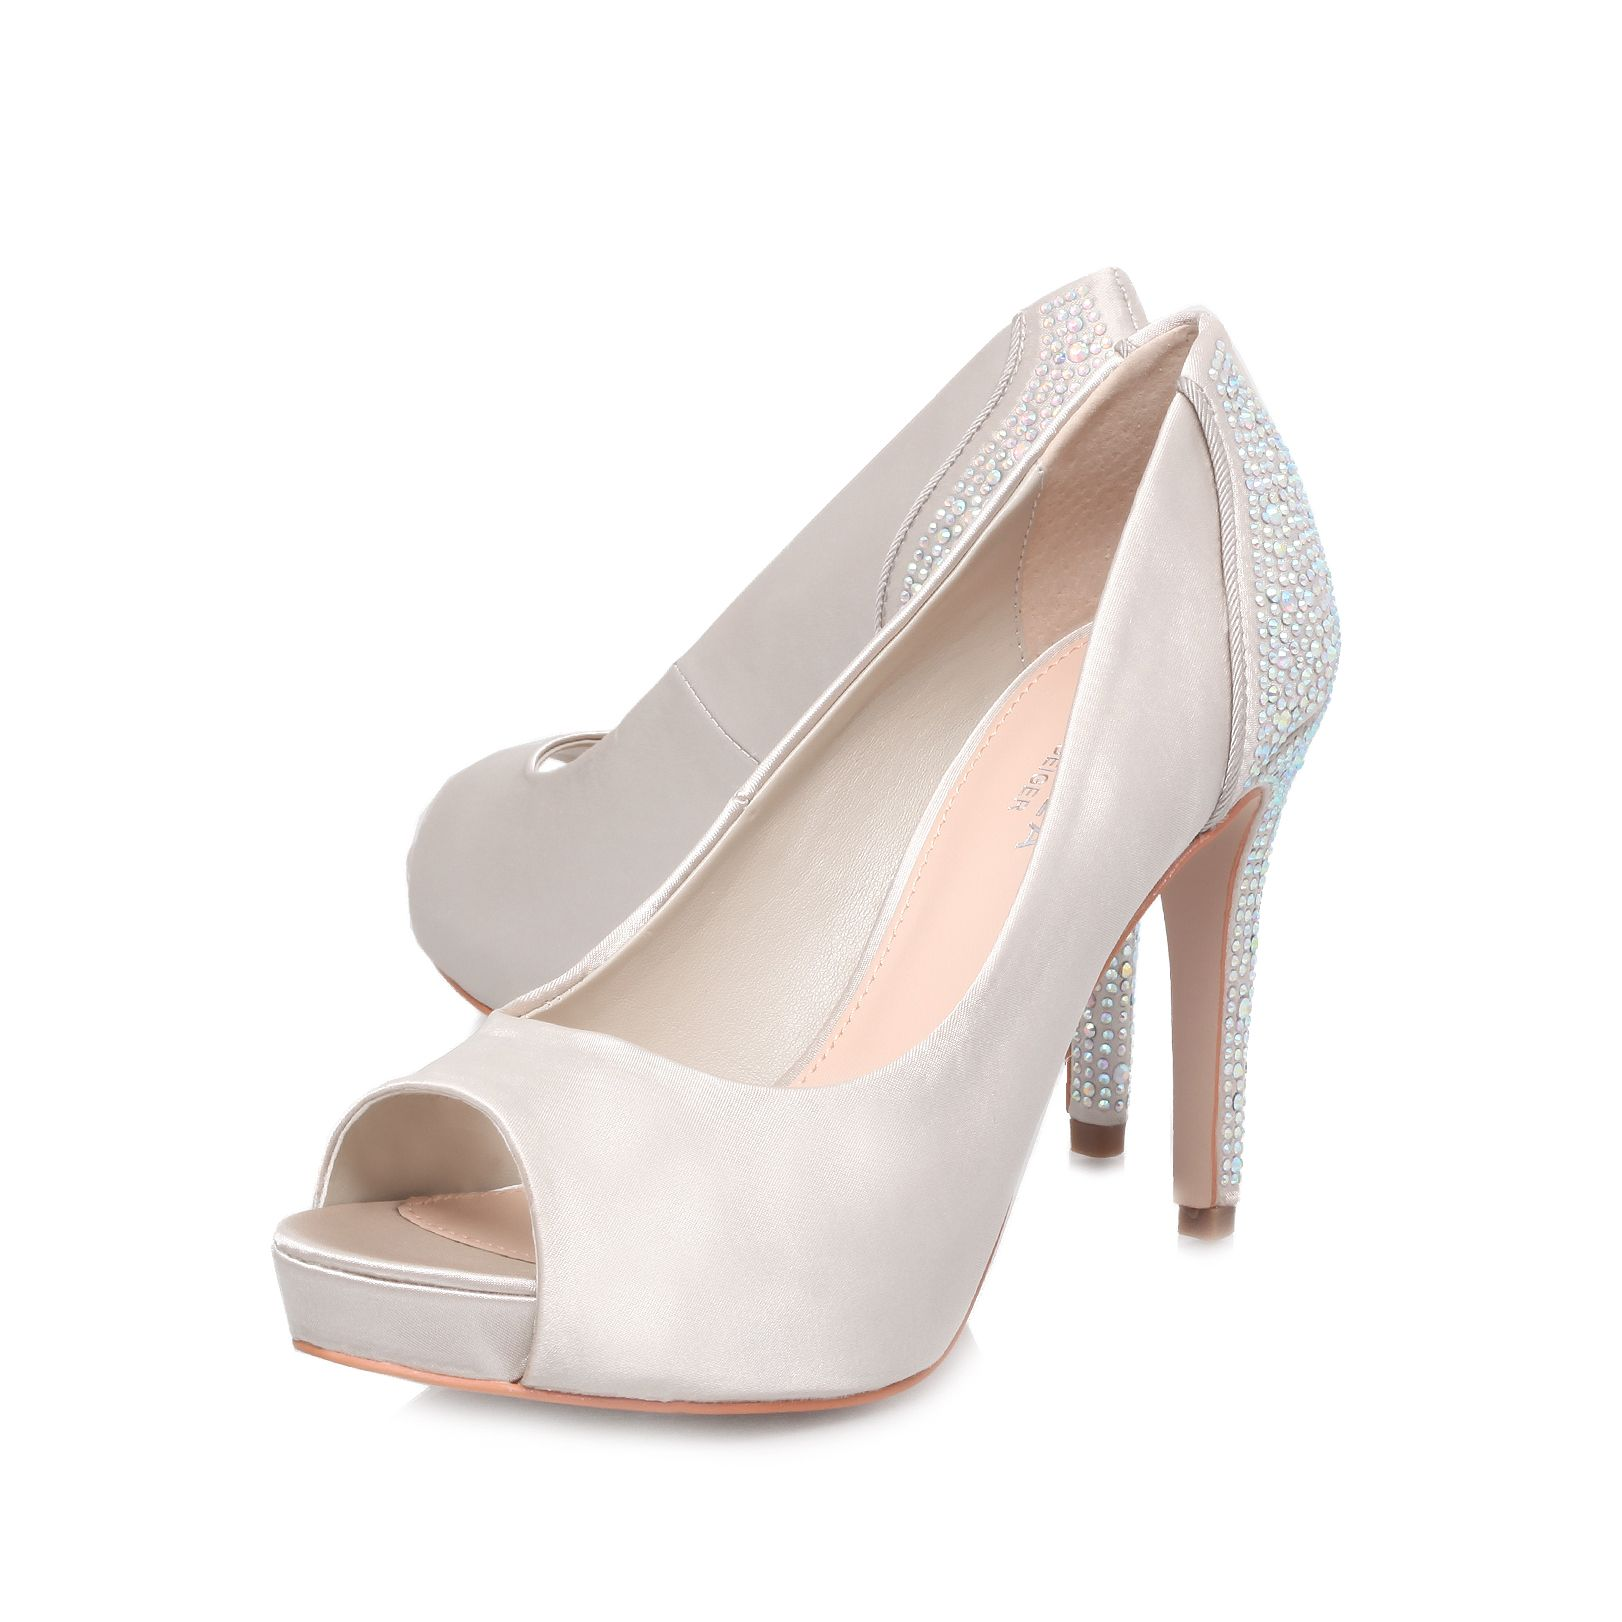 Juliette high heel court shoes